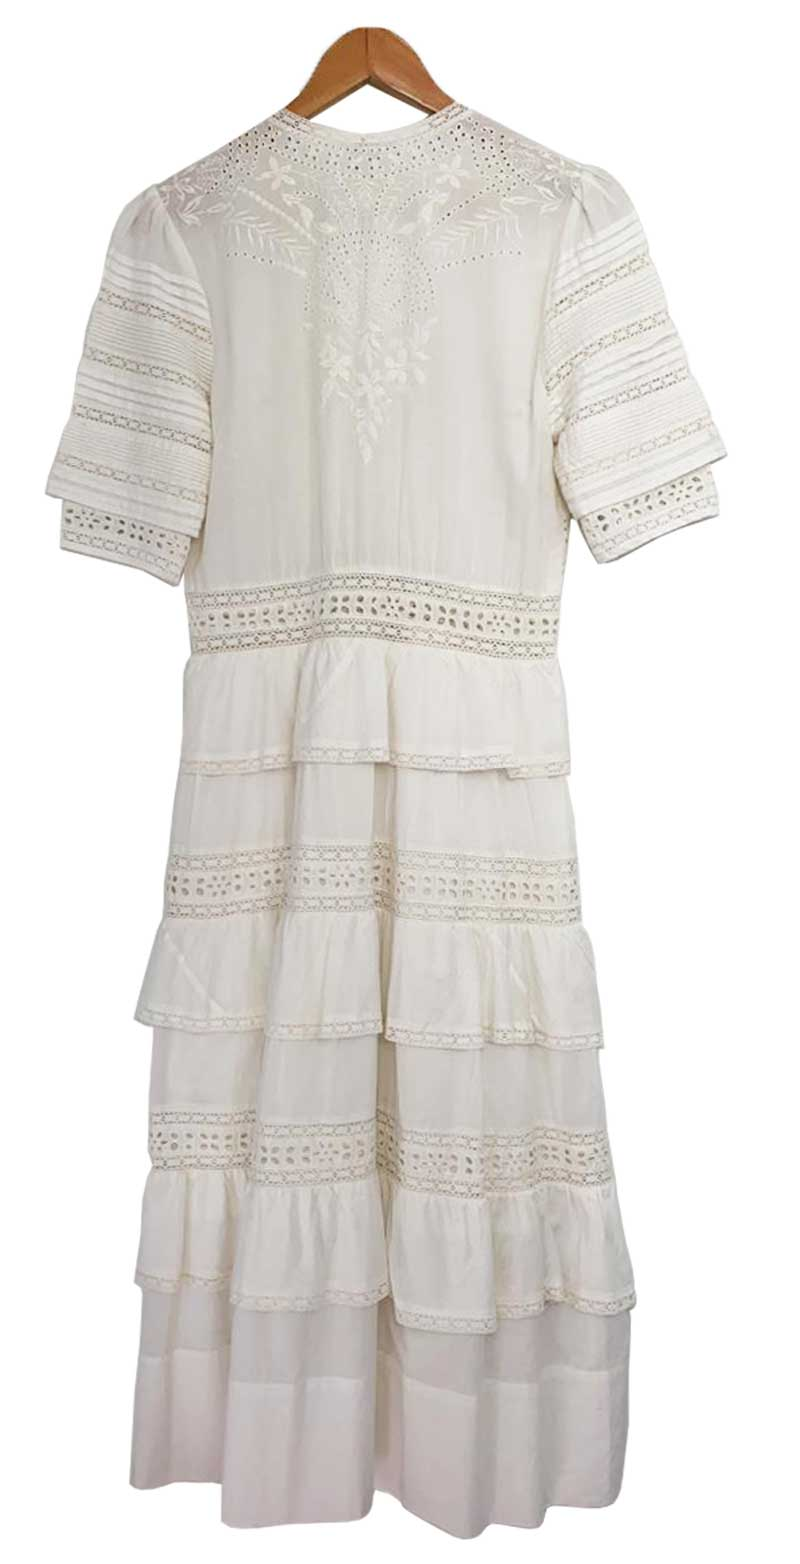 VESTIDO LOVE SHACH FANCY OFF WHITE TAM M